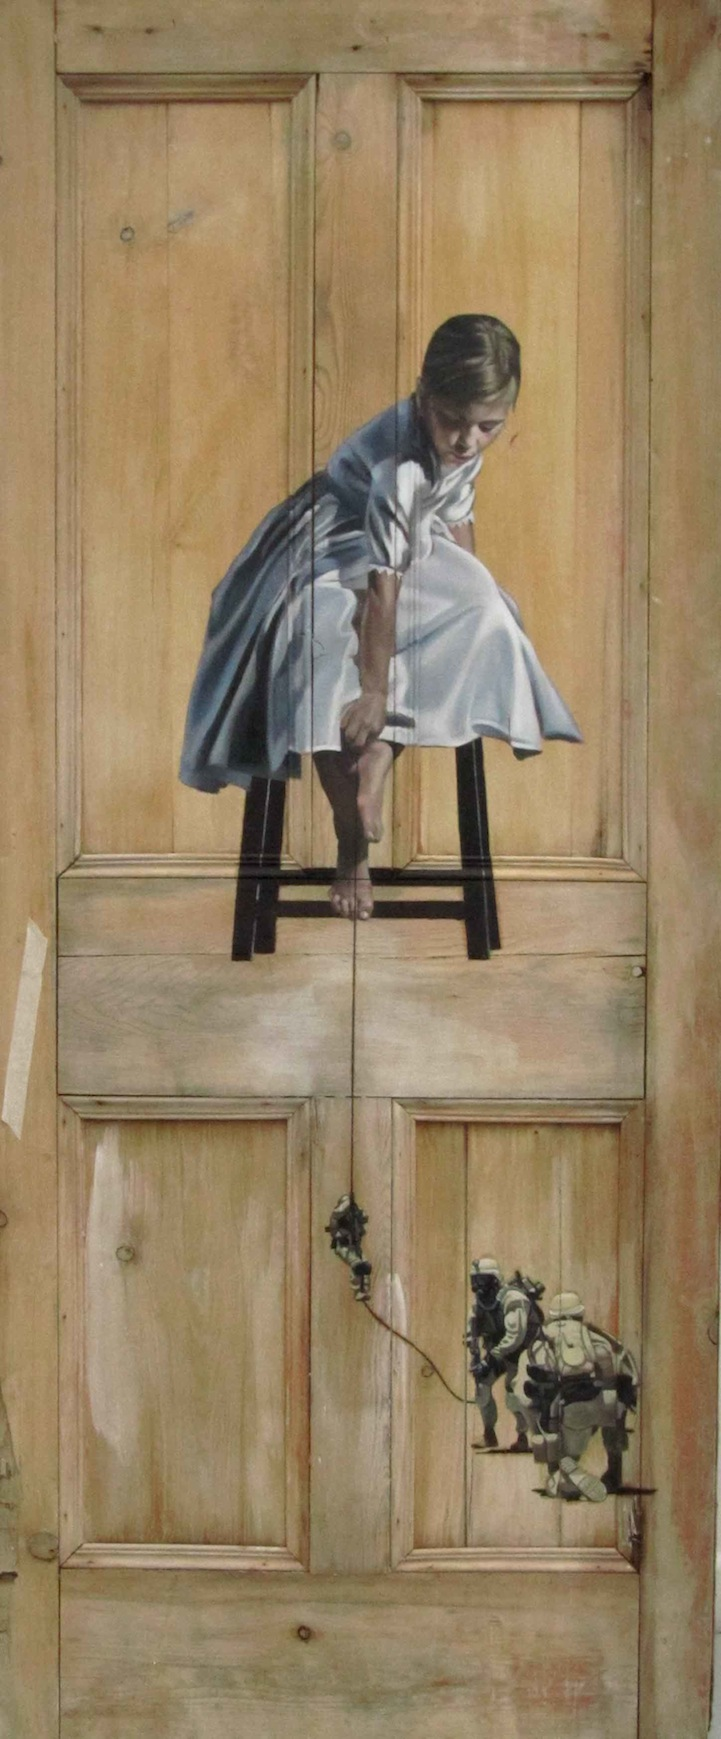 & Intriguing Old Paintings on Worn Doors pezcame.com